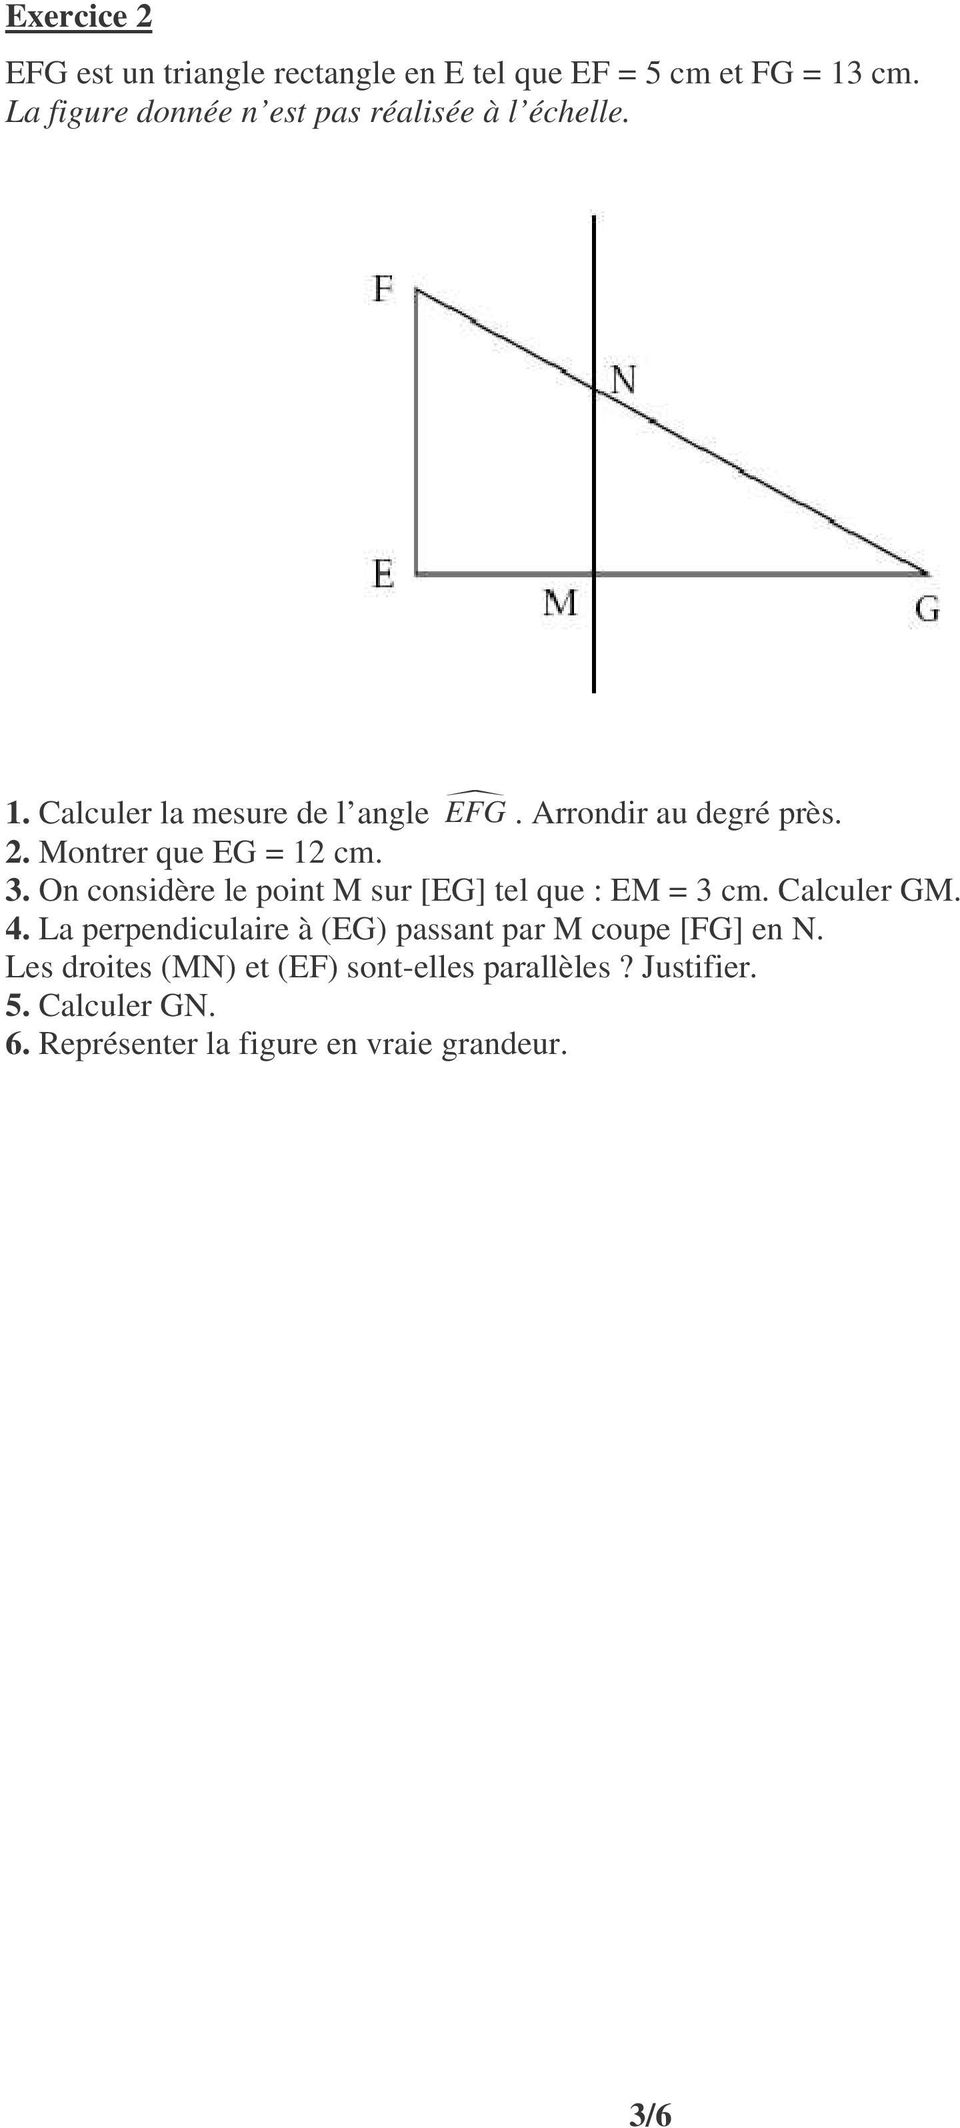 Montrer que EG = 12 cm. 3. On considère le point M sur [EG] tel que : EM = 3 cm. Calculer GM. 4.